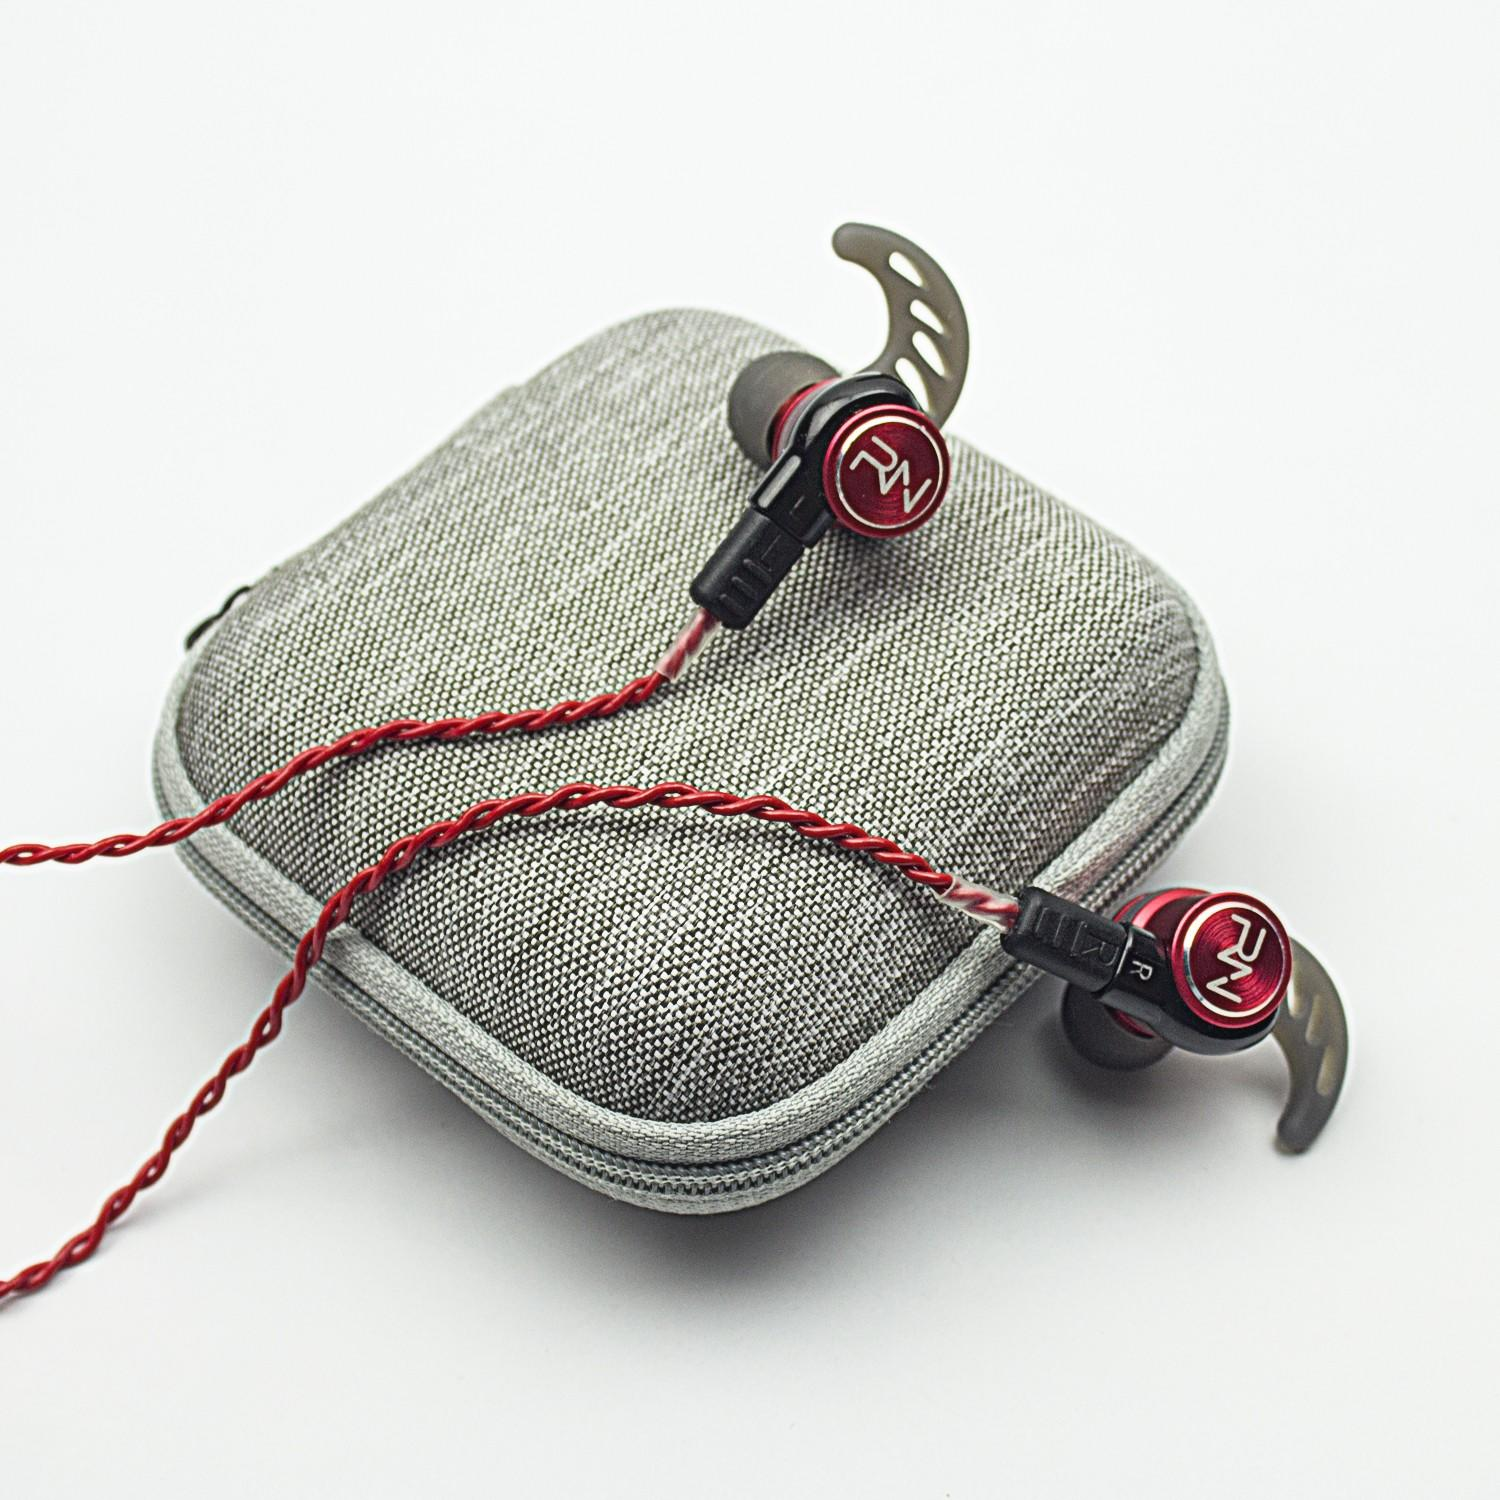 RevoNext silver earphone case online supply for office